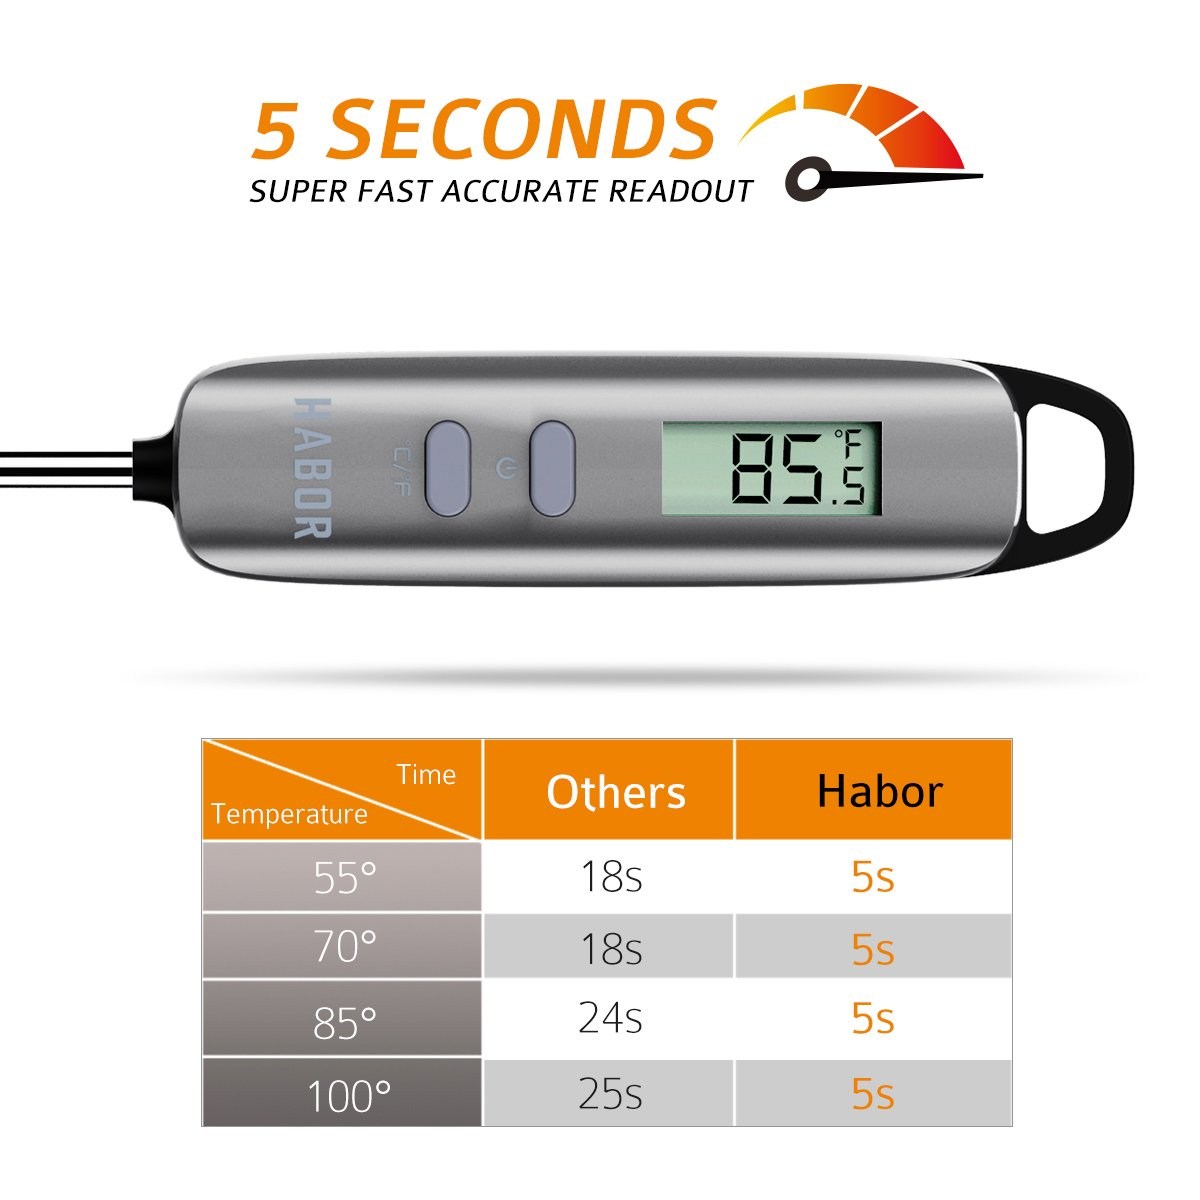 Habor CP022 Meat Thermometer Digital Cooking Thermometer with 5 Second Instant Read-out for Kitchen, Grill, BBQ, Food, Steak, Turkey, Candy, Milk, Bath Water